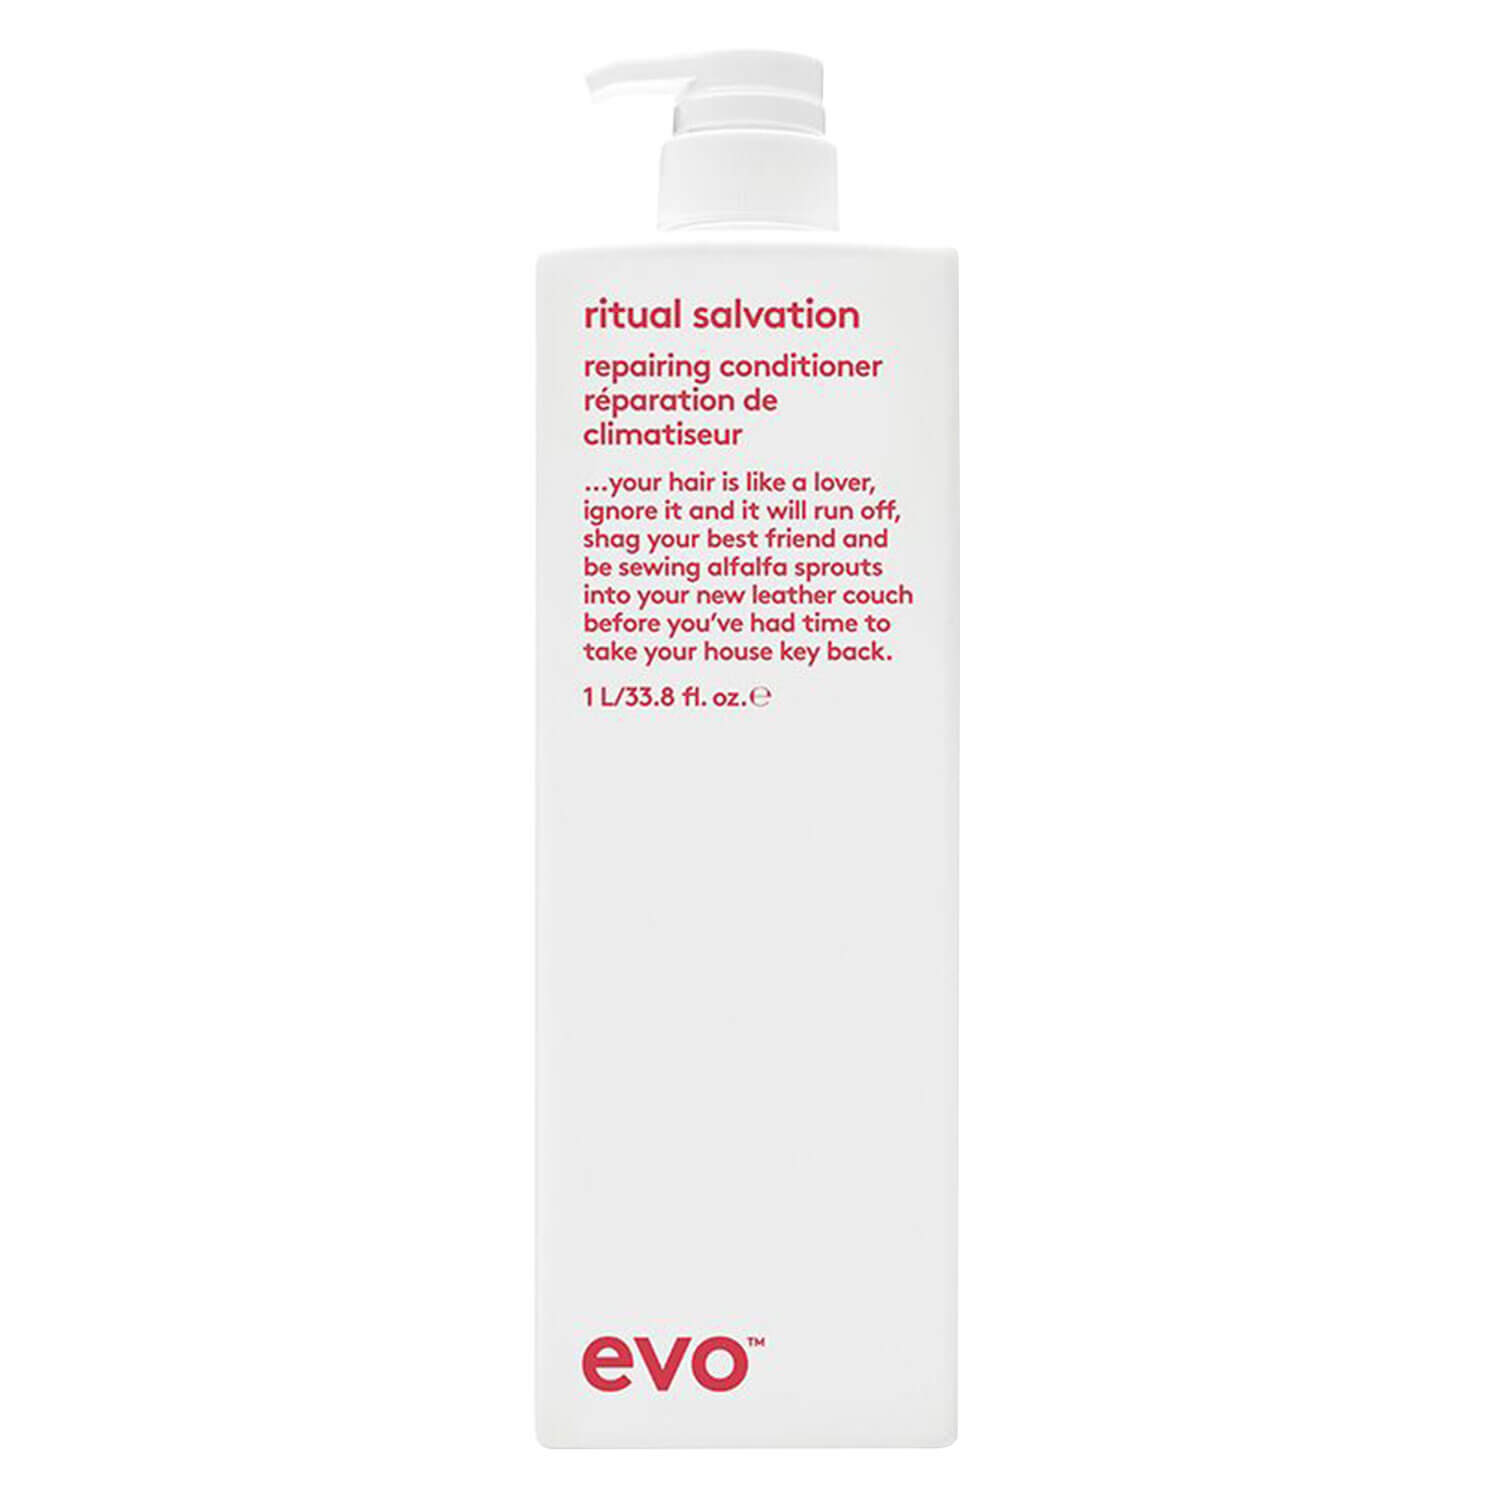 evo care - ritual salvation repairing conditioner